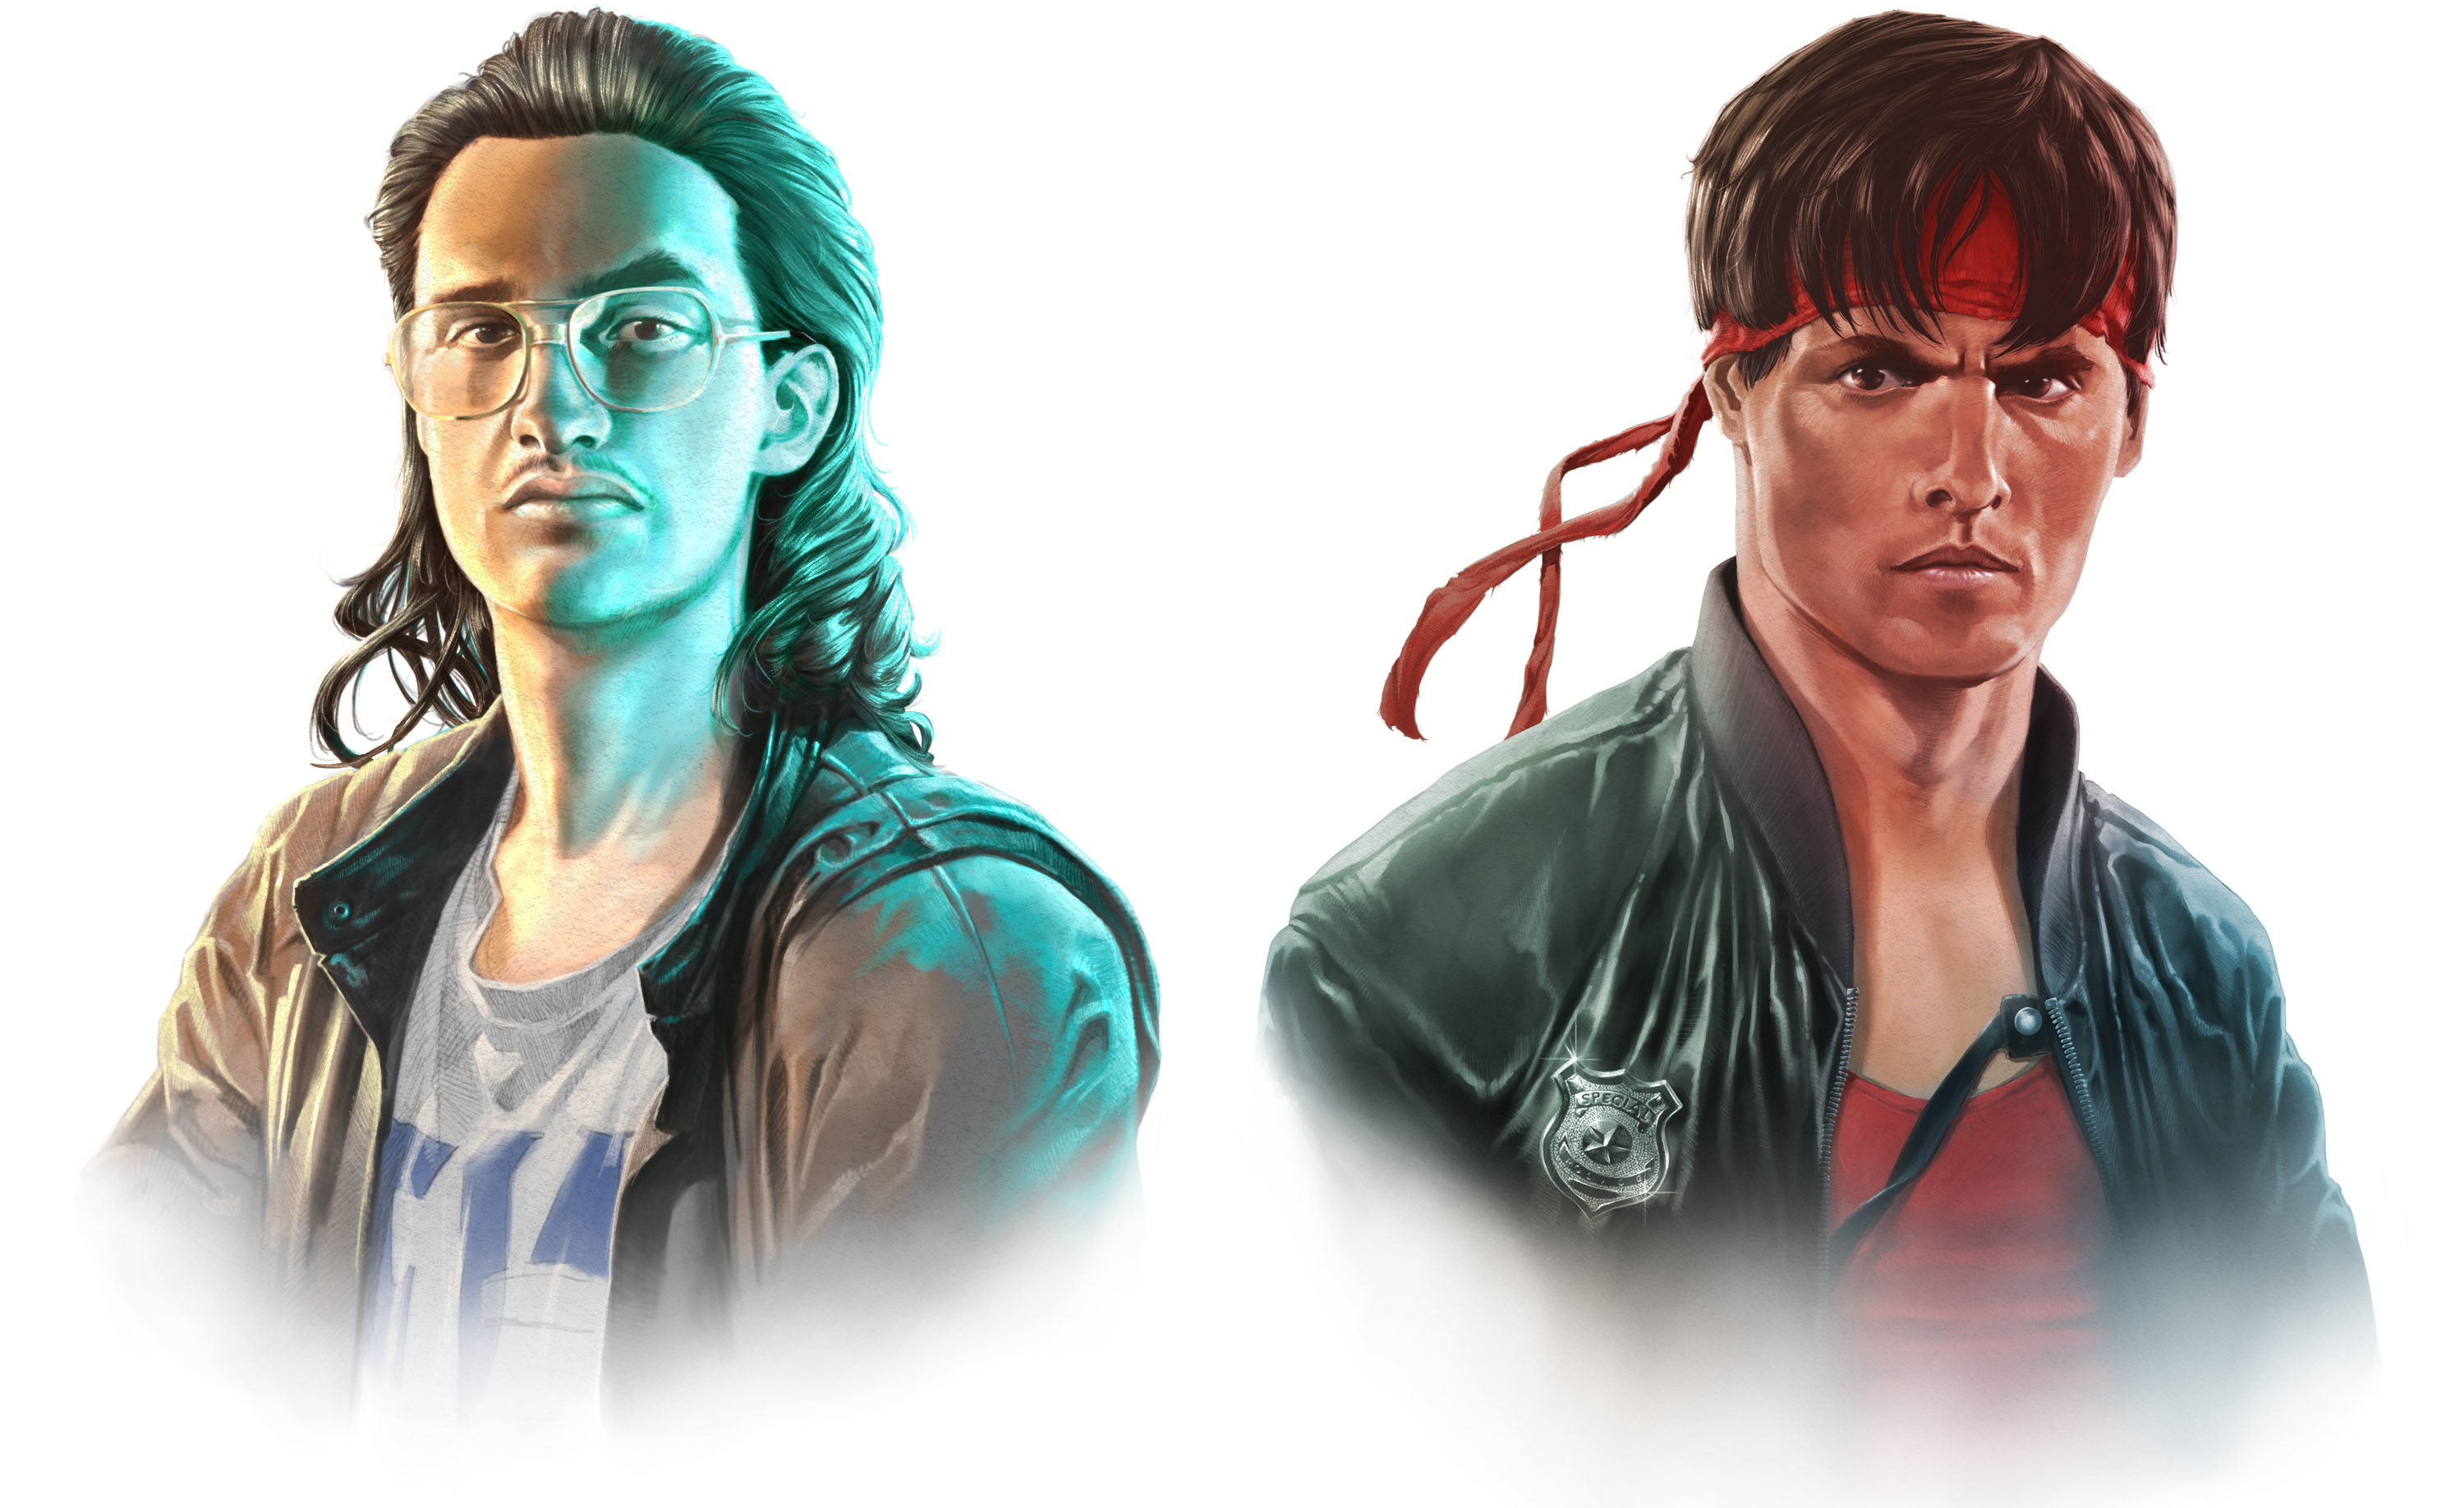 Hackerman and Kung Fury, promotional work for the Kung Fury game